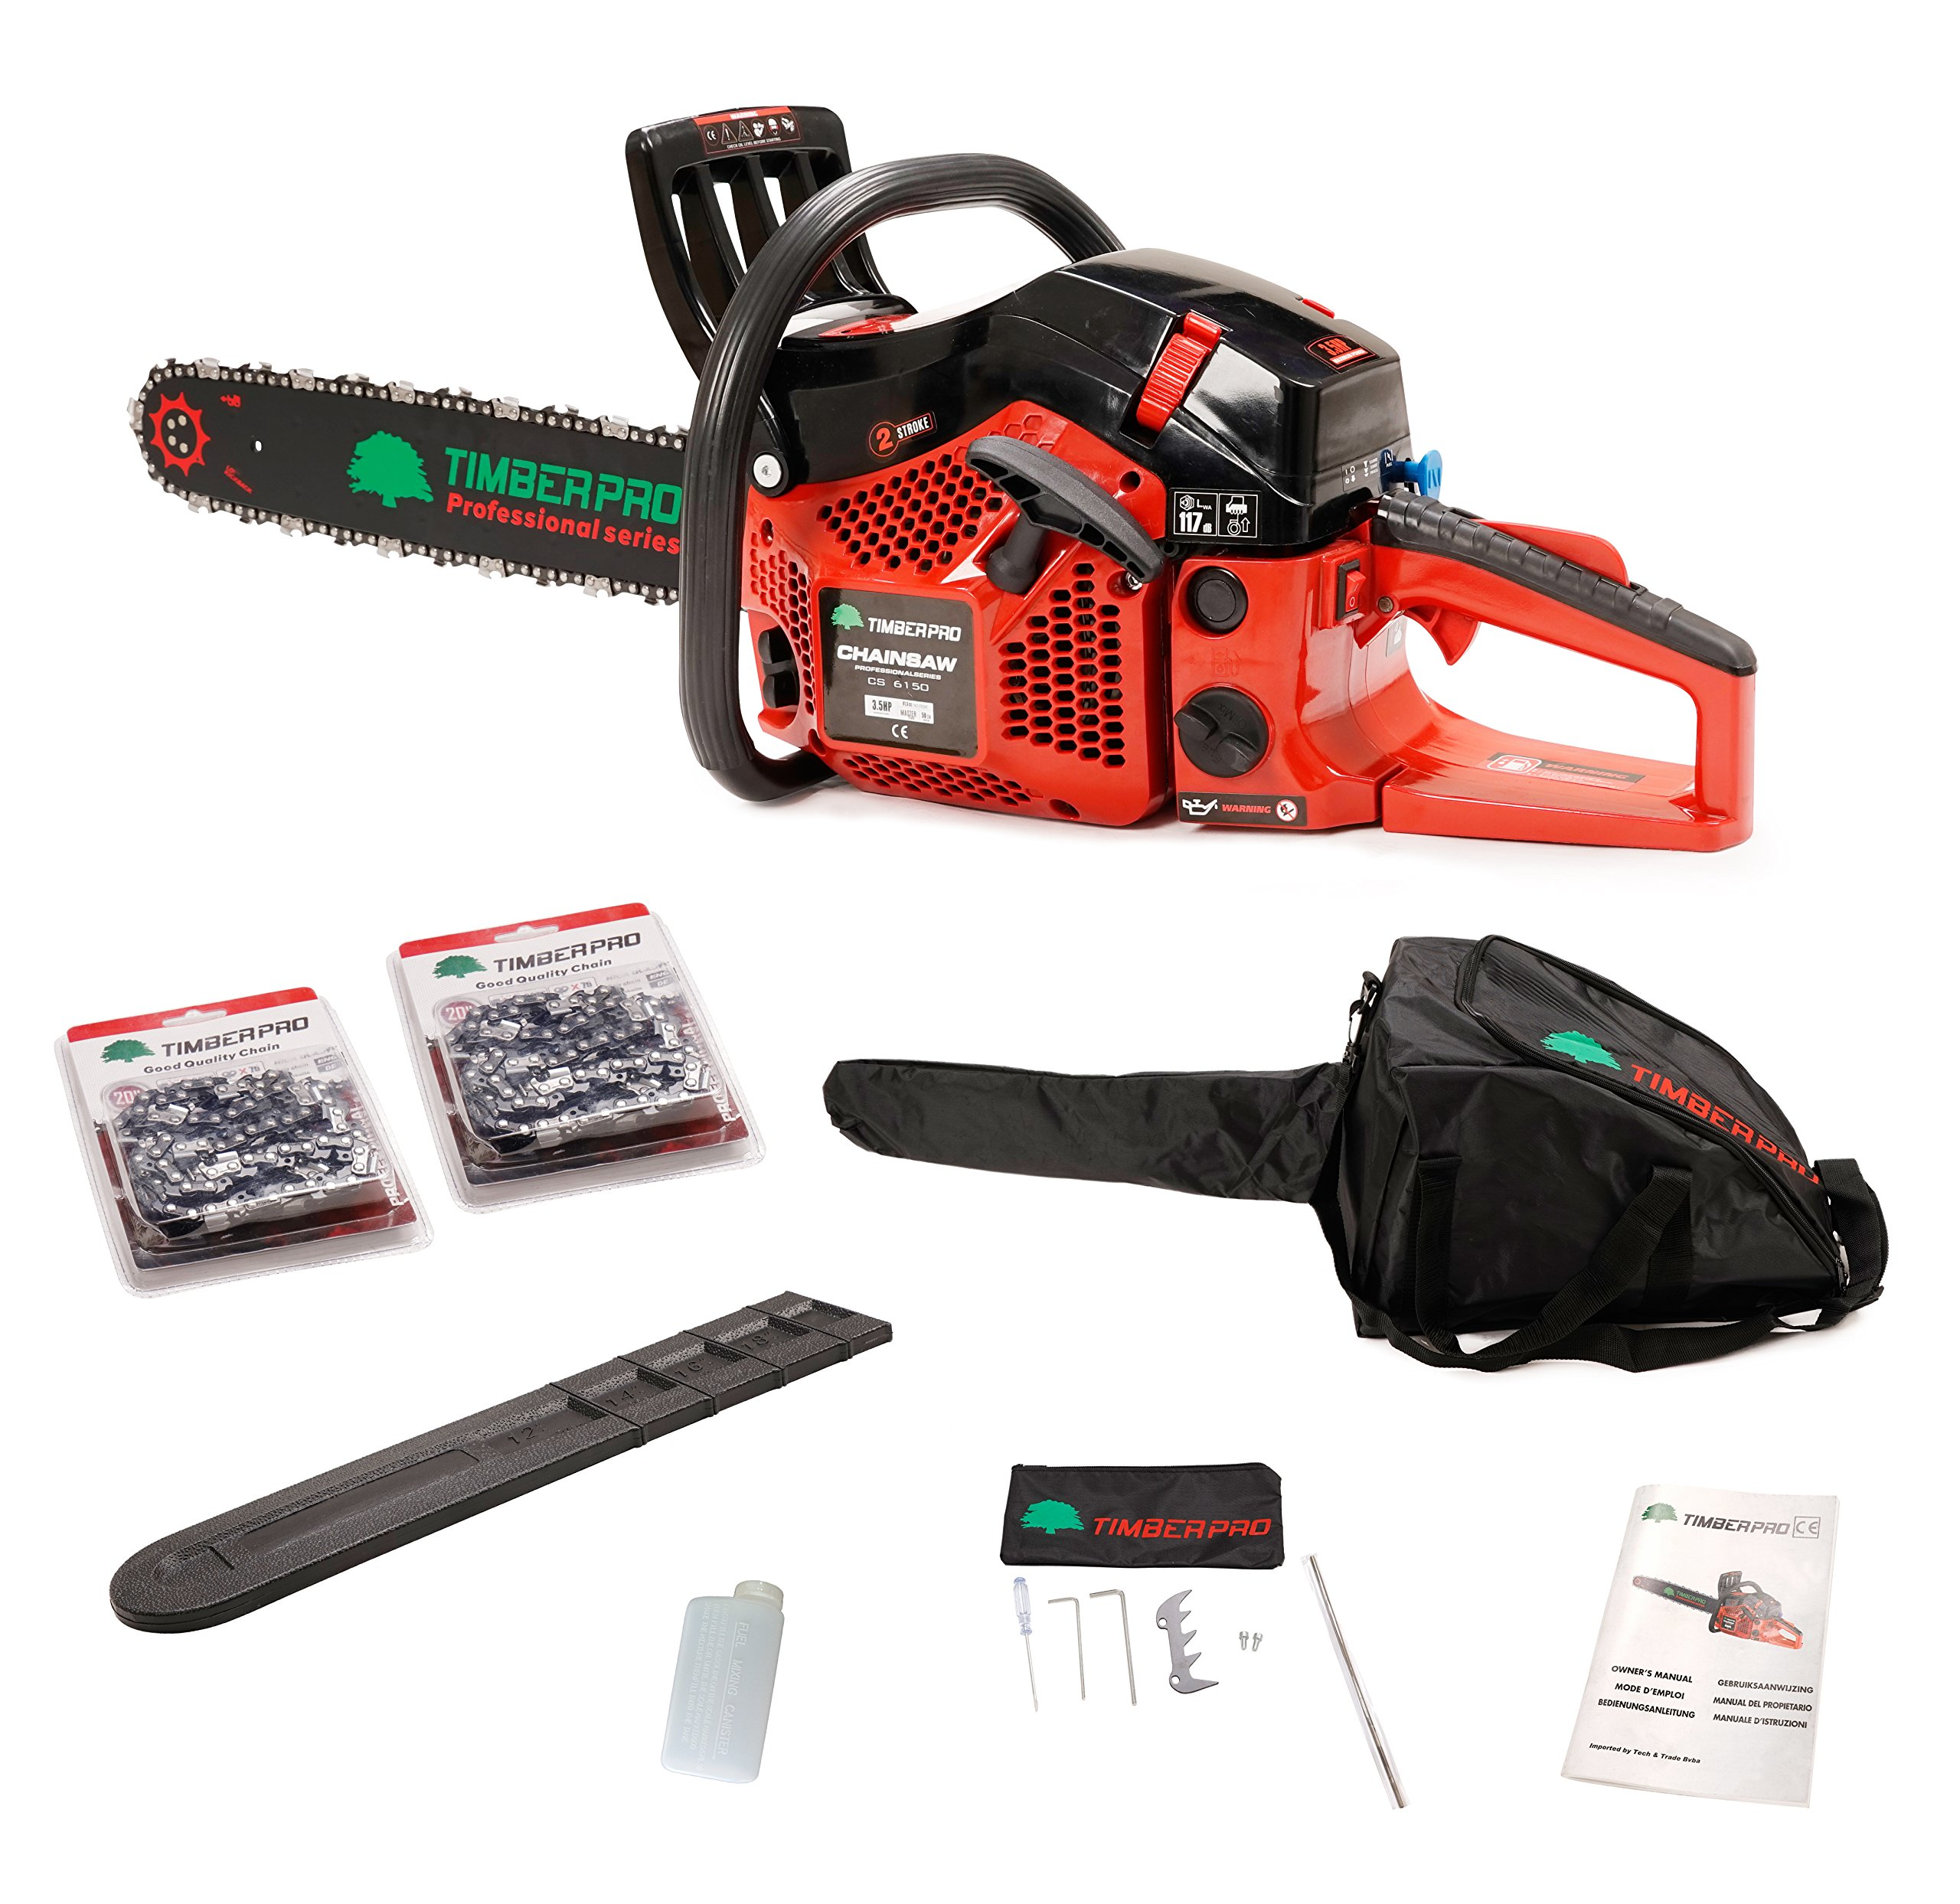 Cheap 62cc Gas Chain Saw 6200 Find Deals On 52cc Scooterx Power Kart Go Get Quotations Timberpro Professional Series Powered Chainsaw Kit With 2x Chains Carry Case